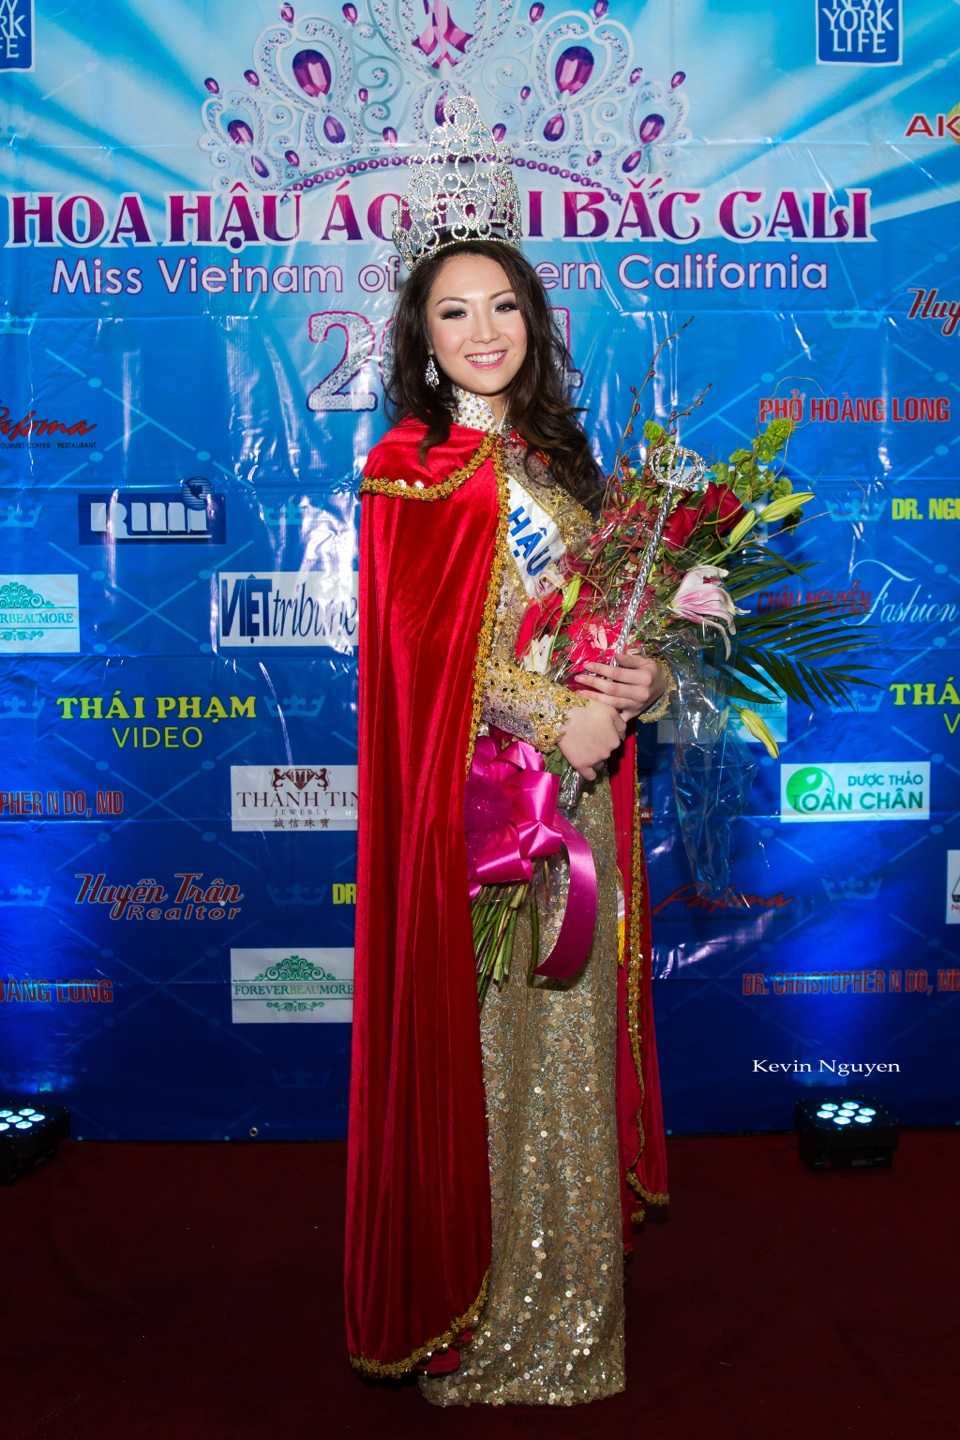 Pageant Day 2014 - Miss Vietnam of Northern California - San Jose, CA - Image 874